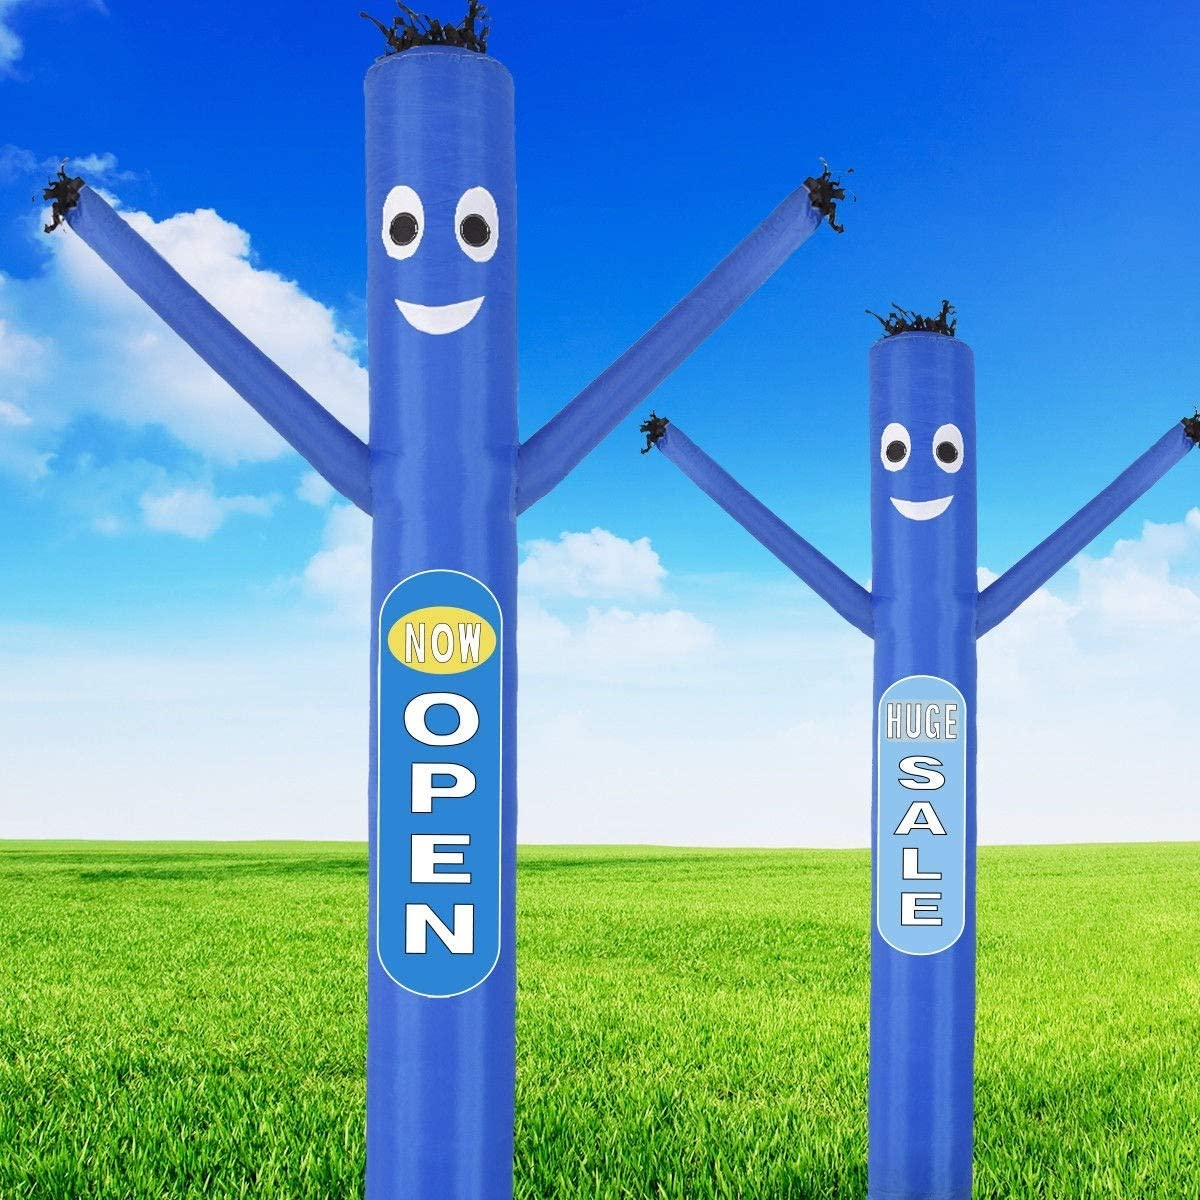 Blue Multi-Functional Commercial Promote Event Your Business Outdoor Display Inflatable Air Dancer Puppet Tube 10ft with Blower